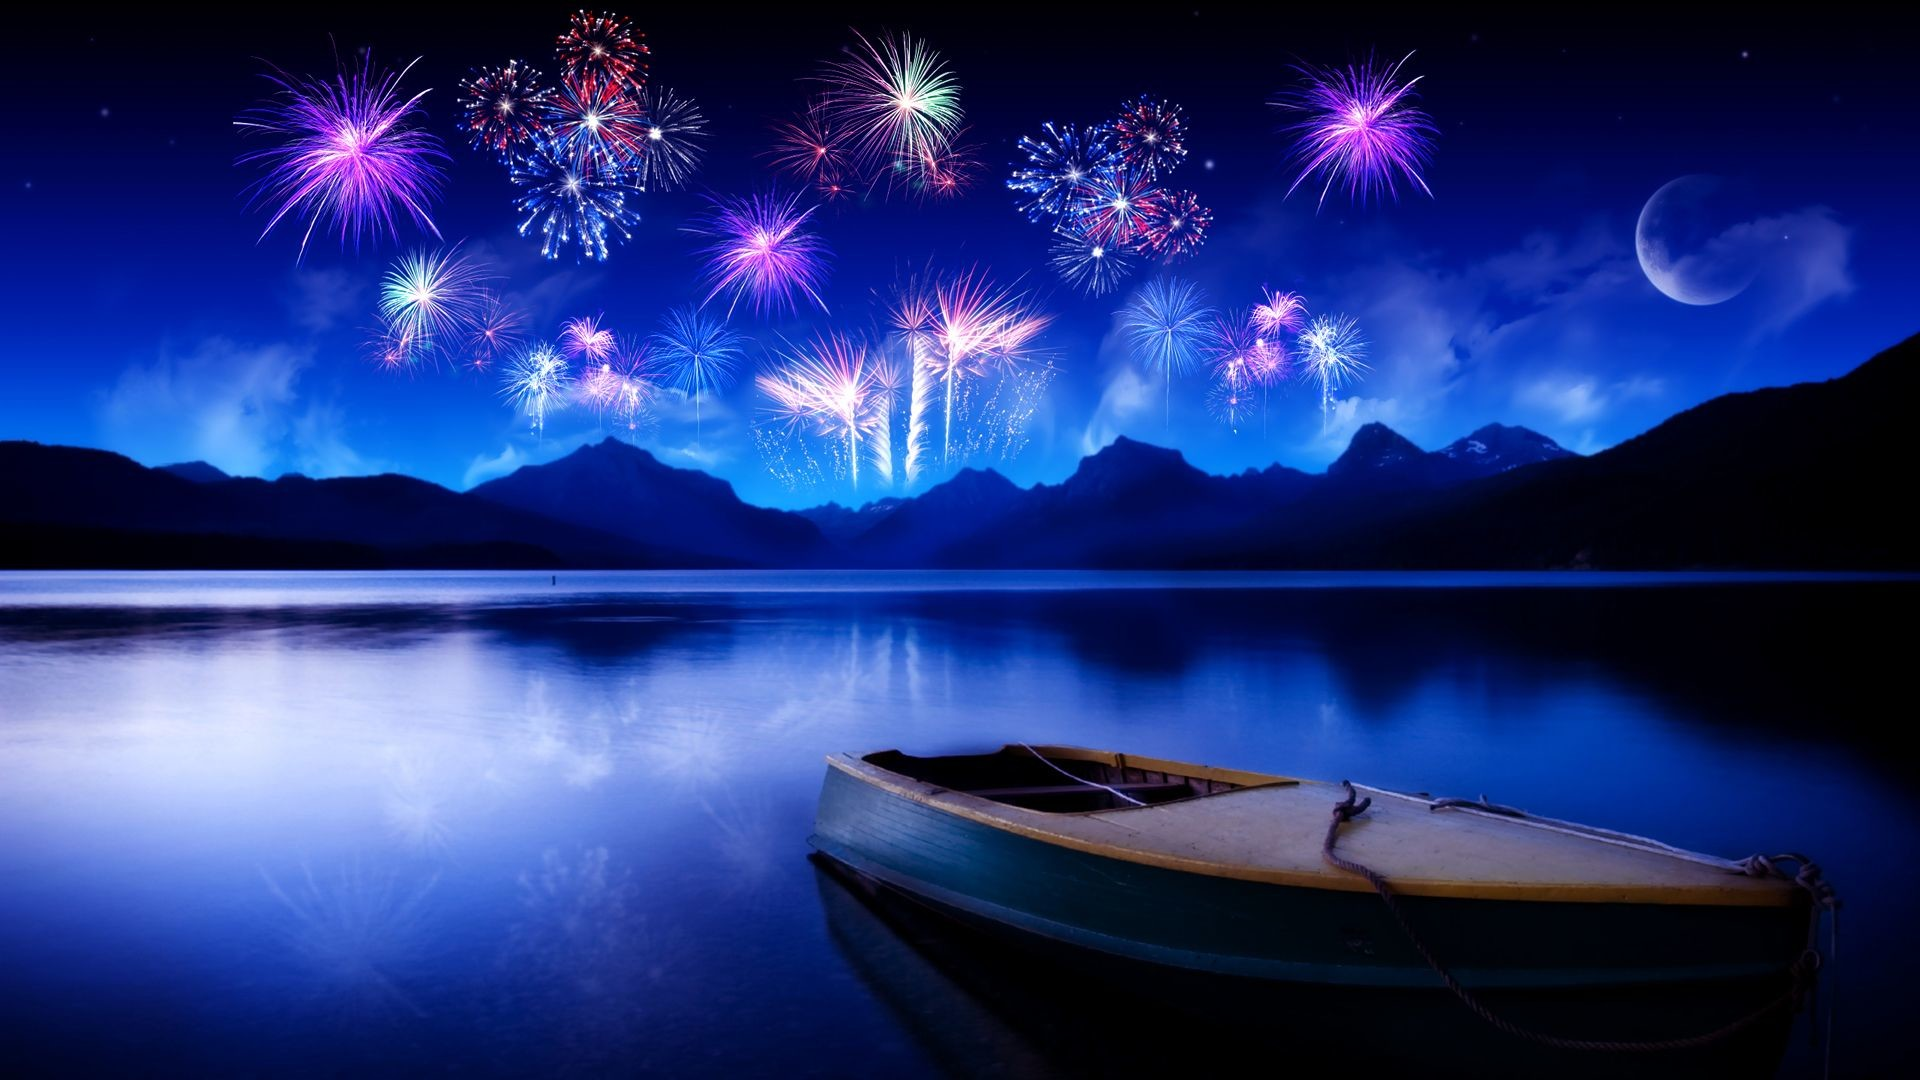 1920x1080 Fireworks Blue Lake HD Wallpaper. « »